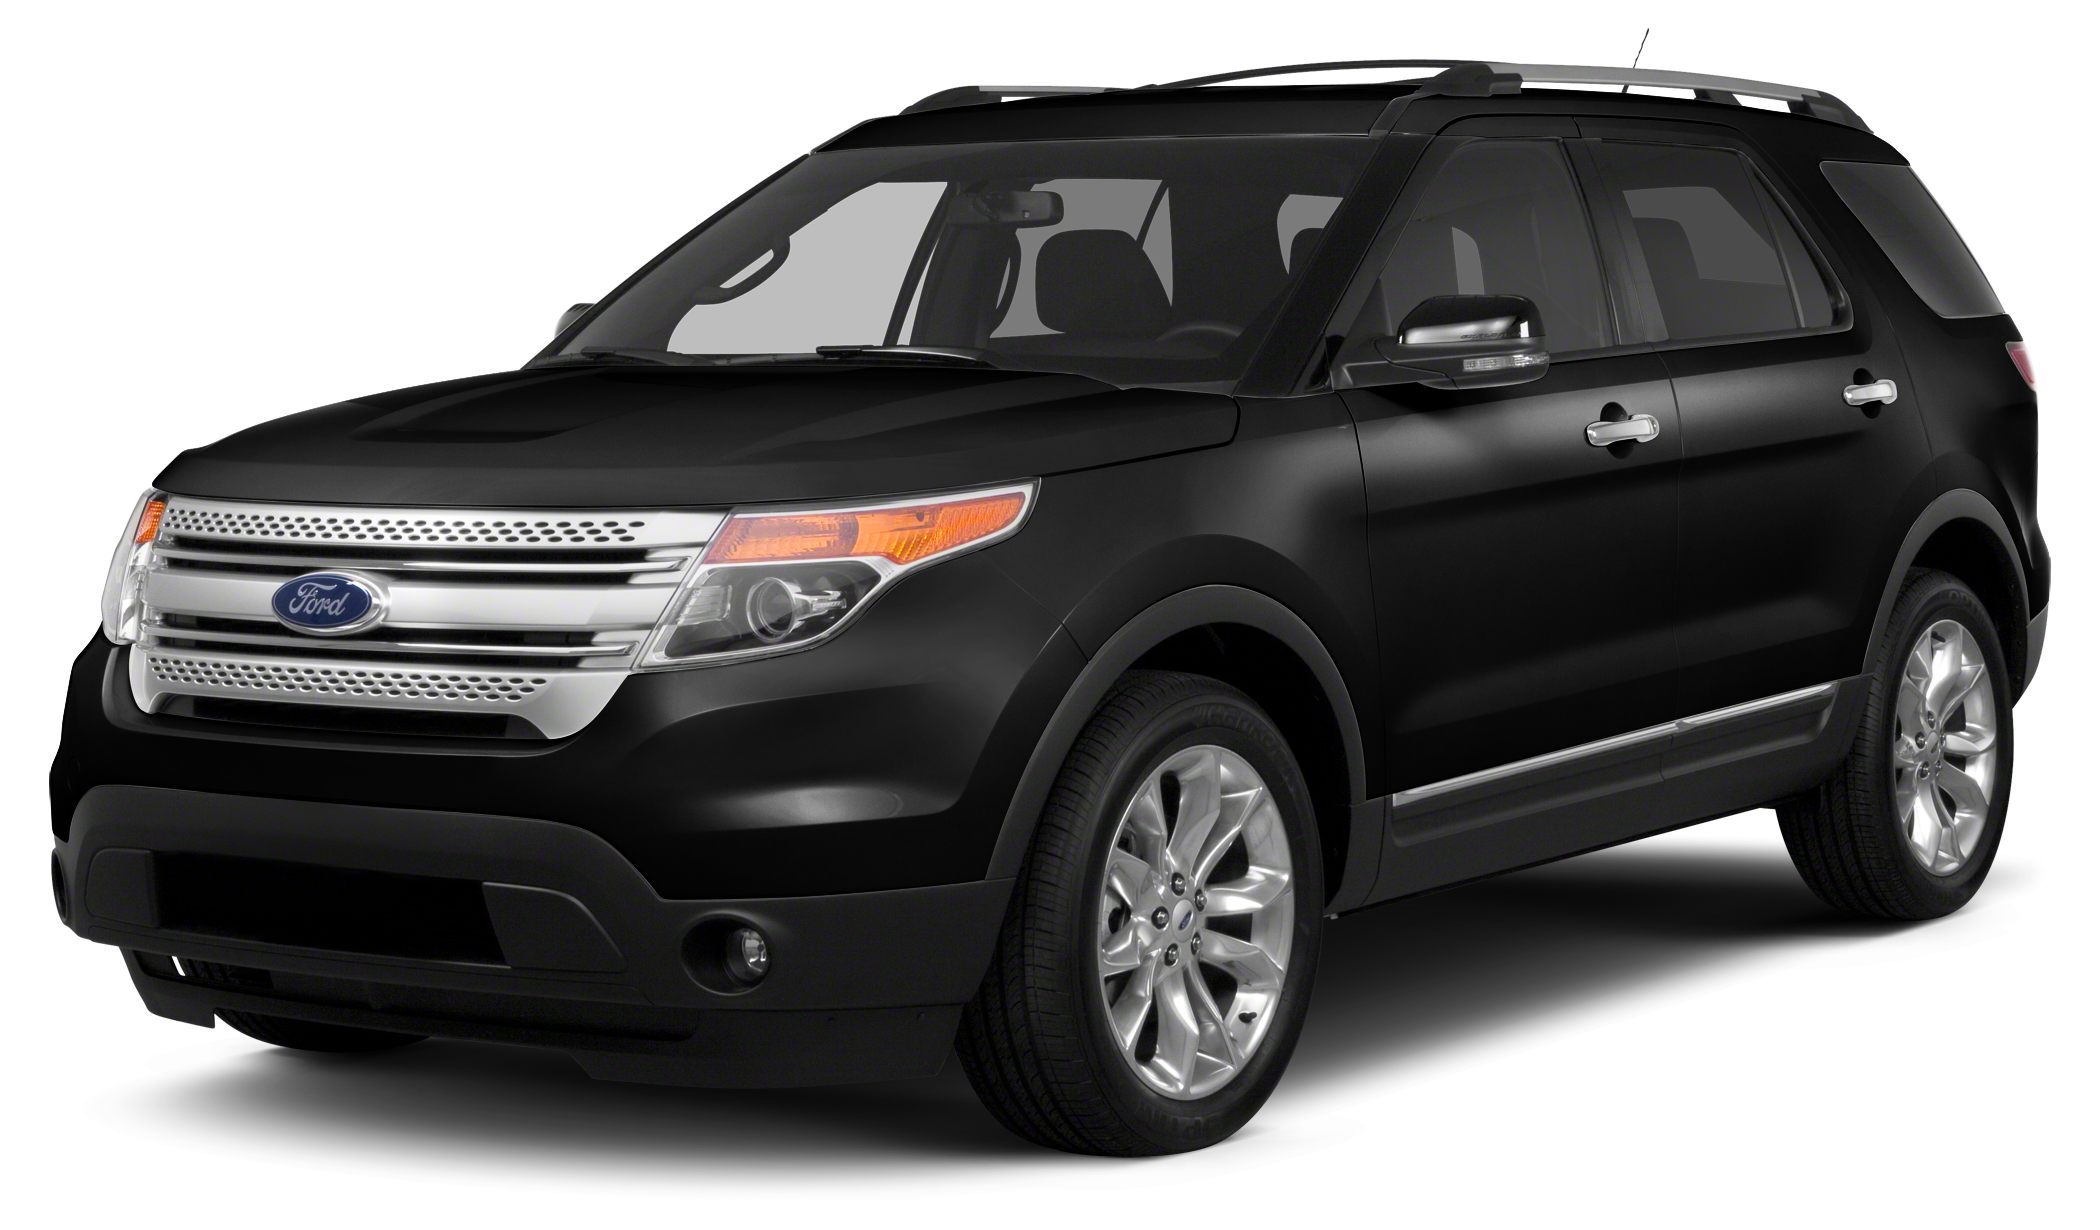 2014 Ford Explorer XLT Miles 9076Color Black Stock R9026Z VIN 1FM5K8D8XEGB80399